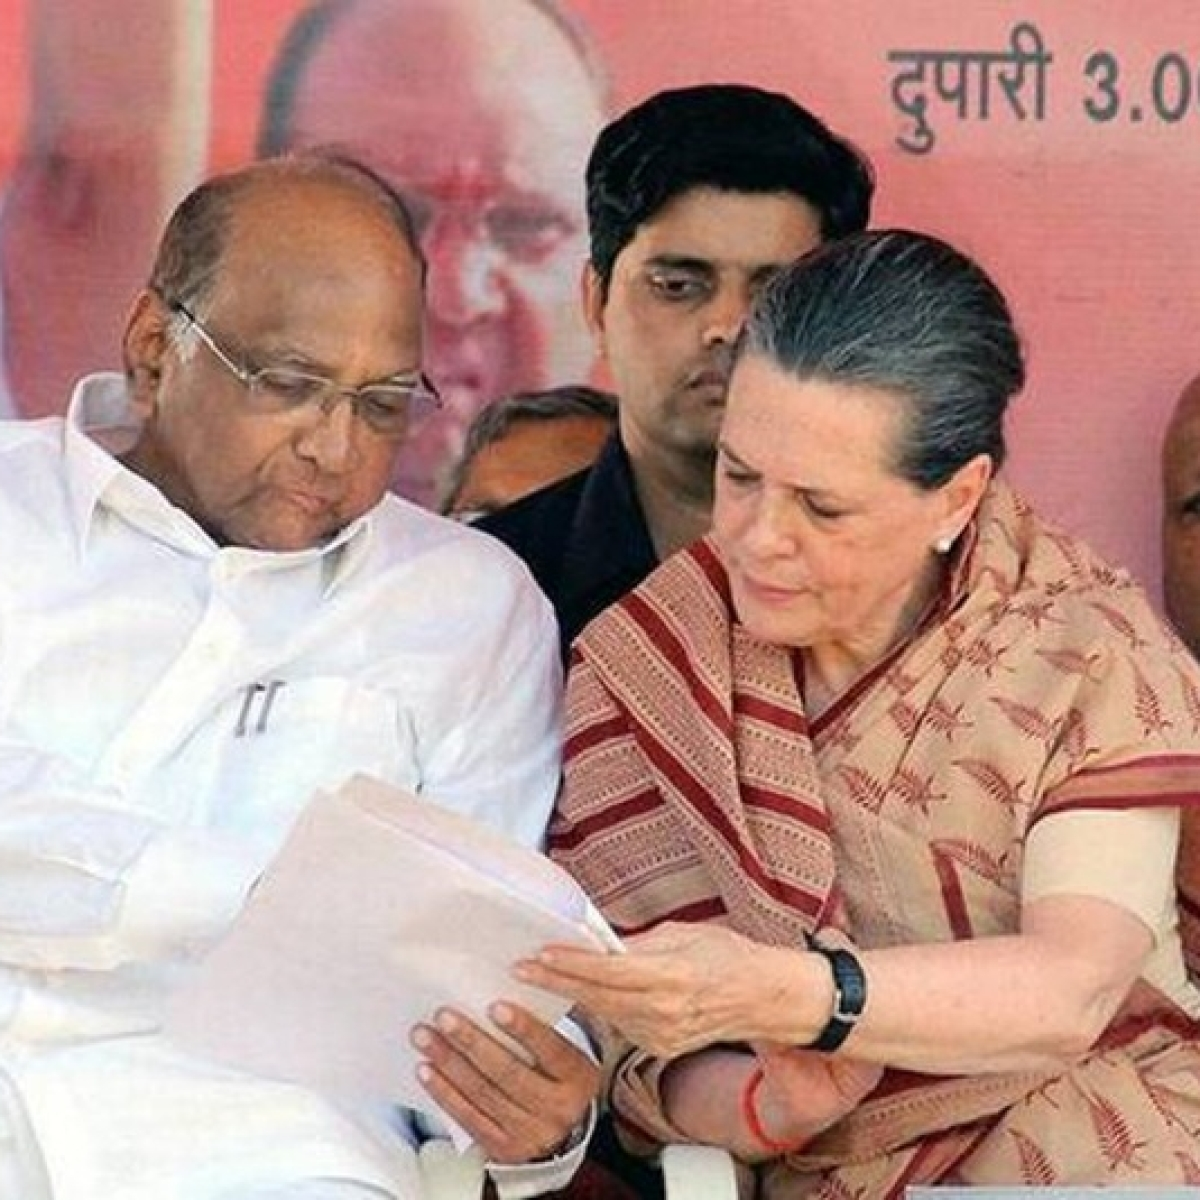 Congress, NCP continue to fight over Dy CM, speaker posts